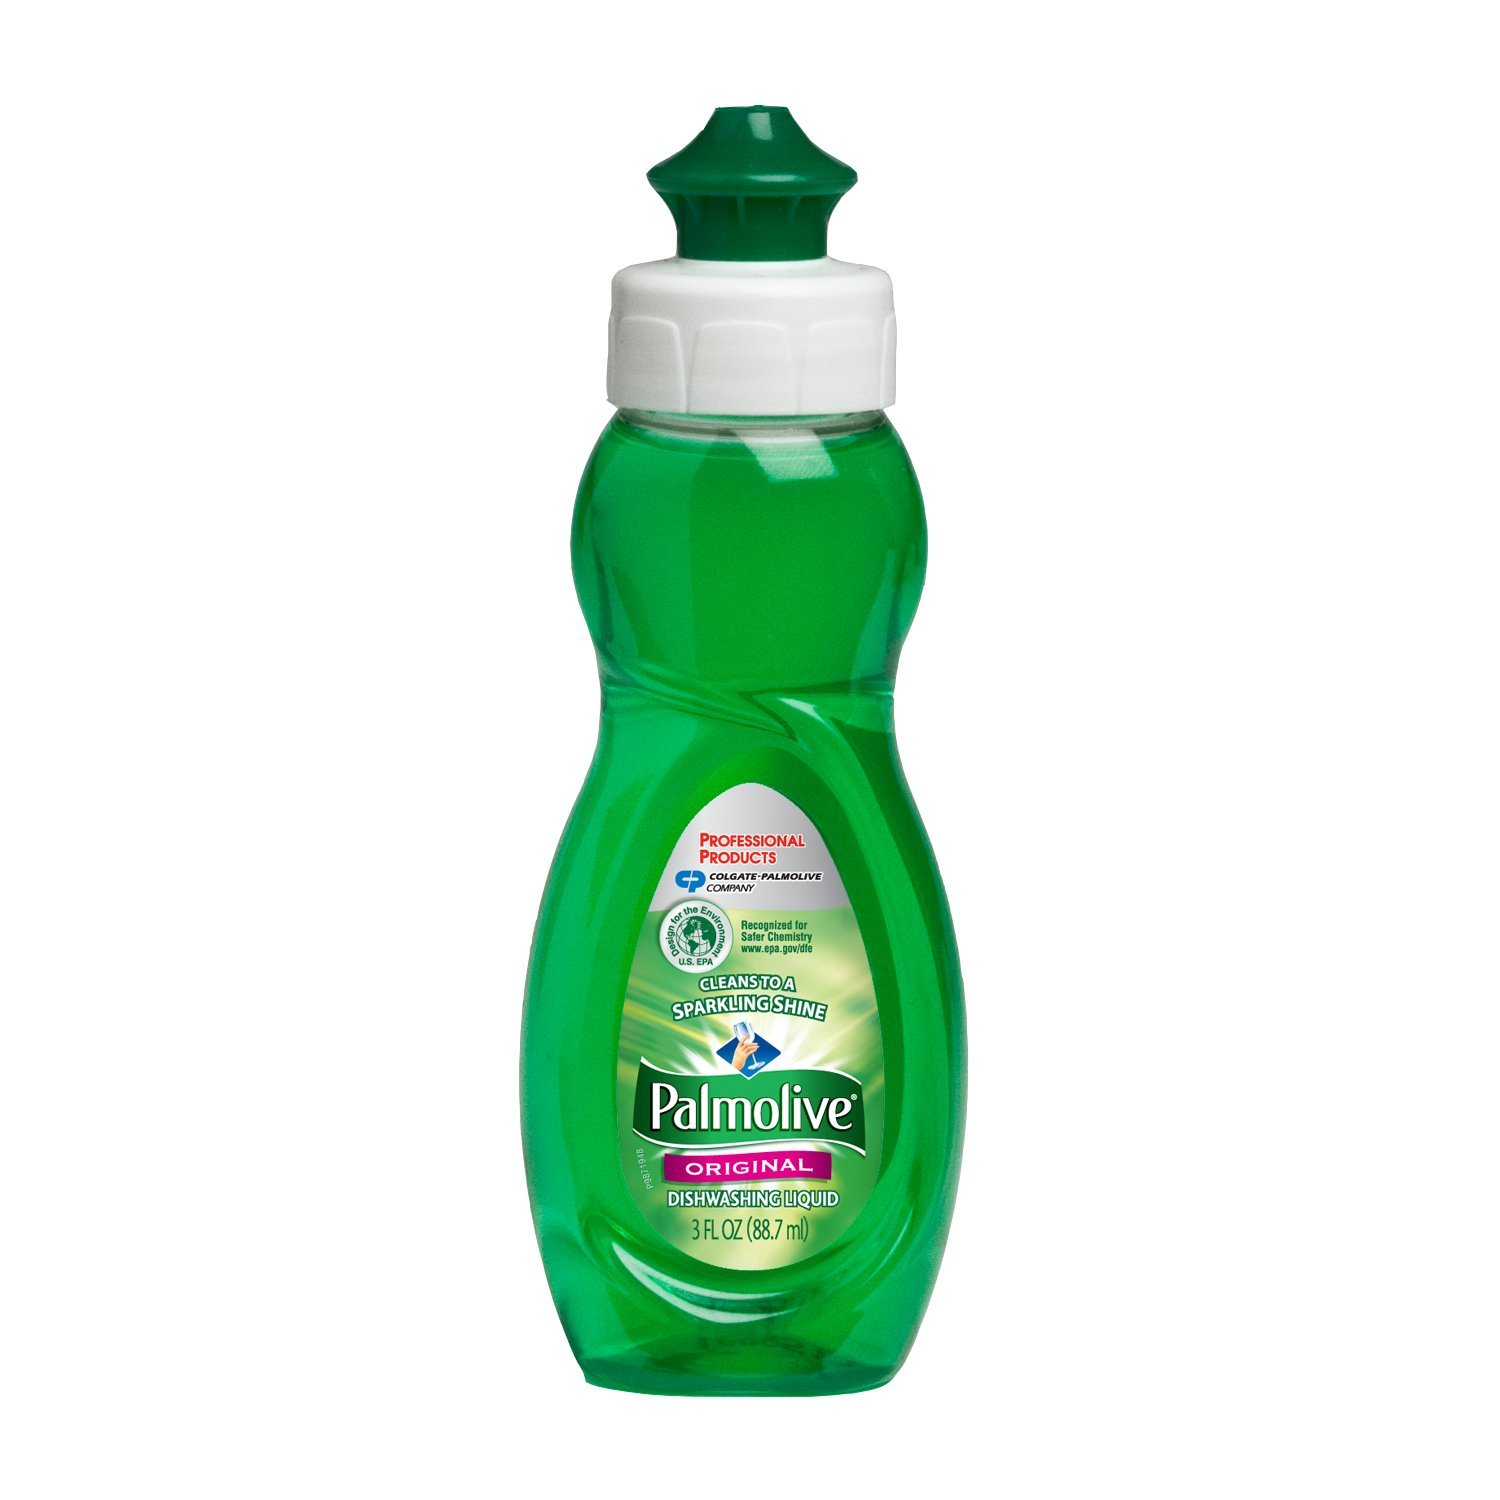 Colgate Palmolive Products